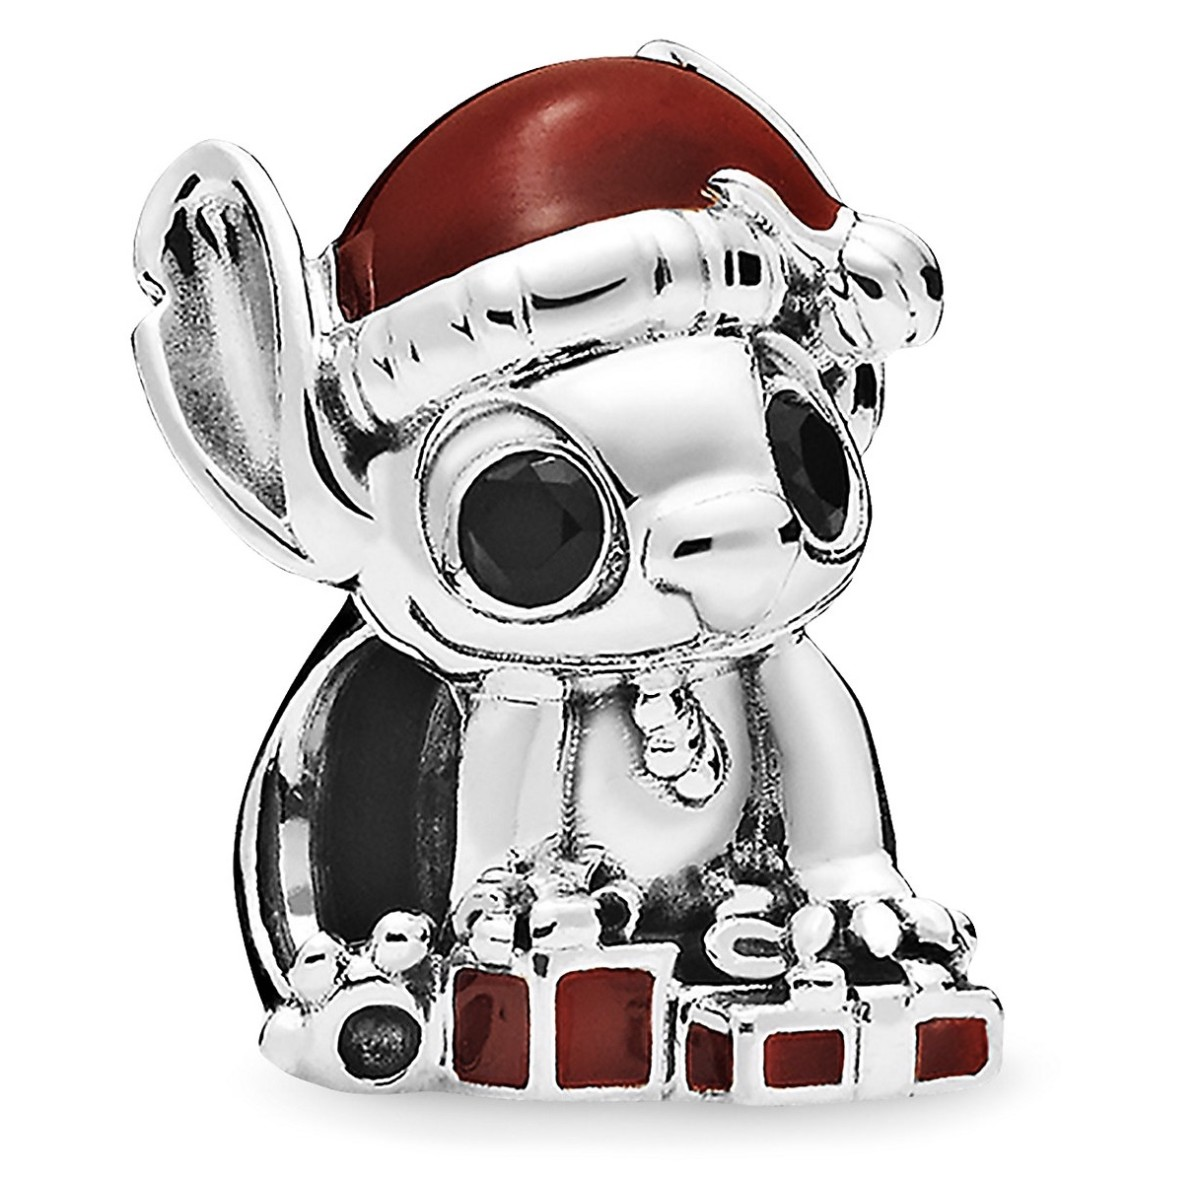 Disney Pandora Charms for the Holidays! 5